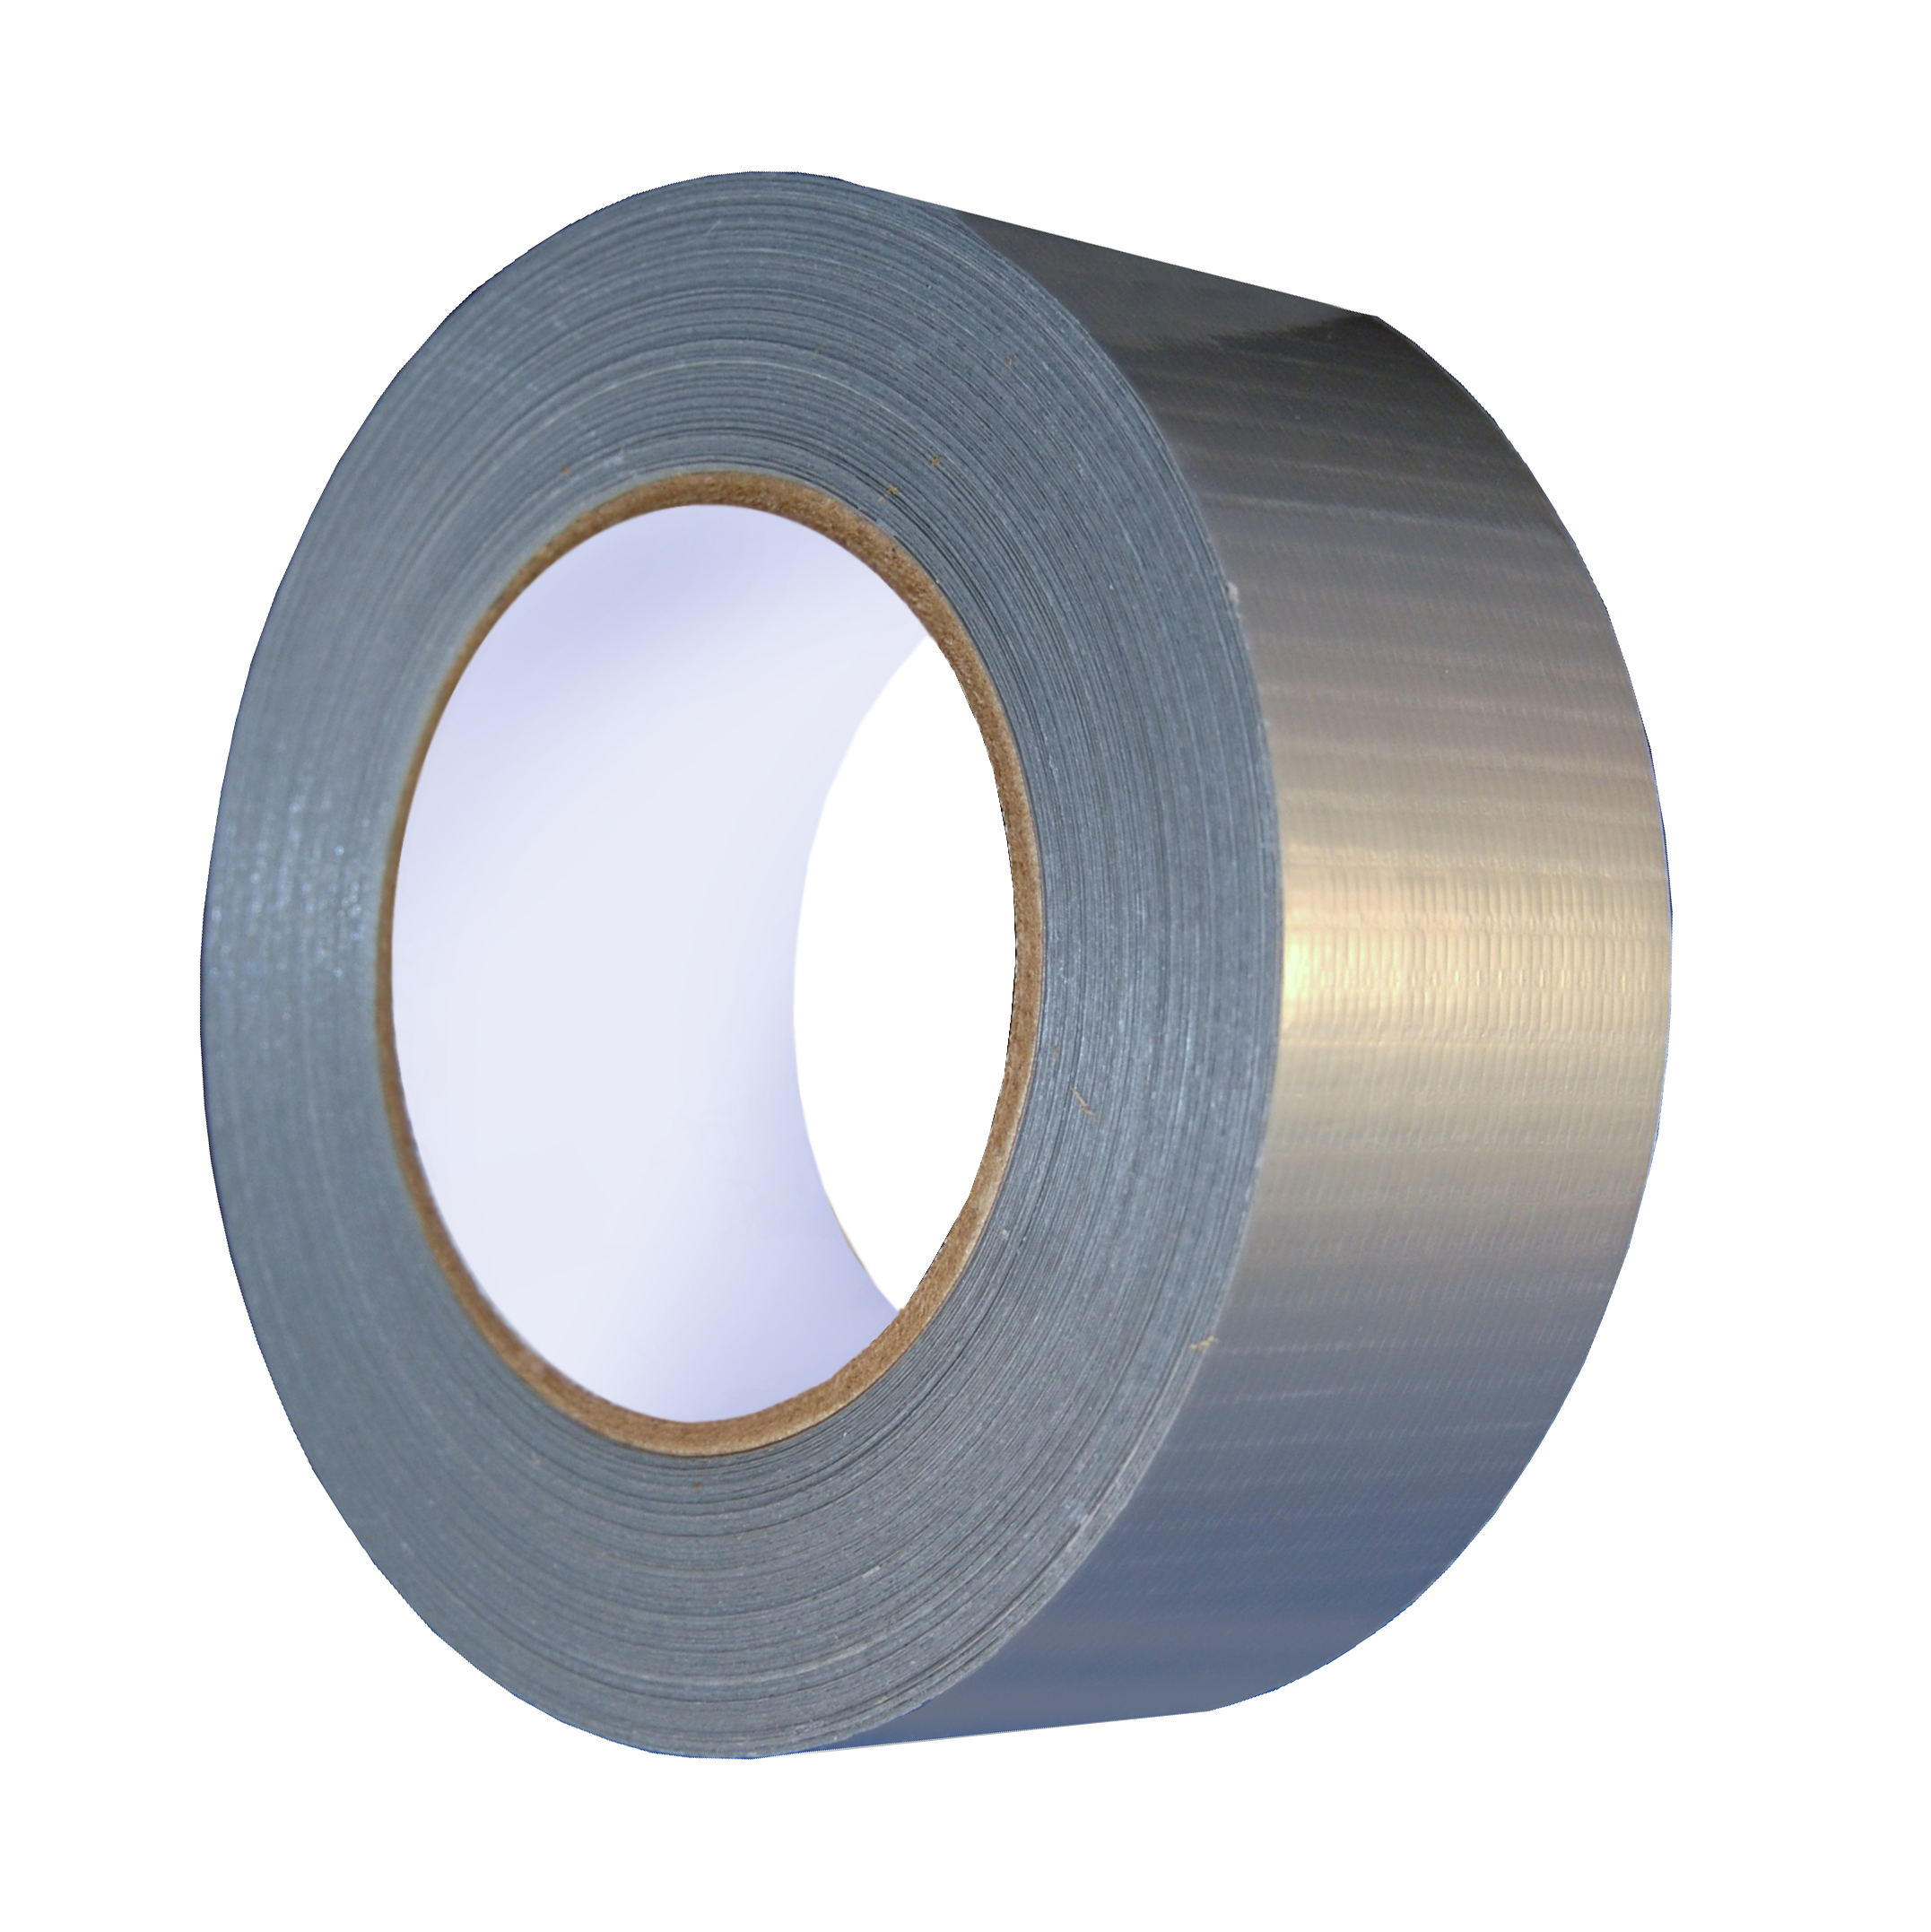 Firestop Drywall Amp Adhesives Duct Tape Economy Duct Tape